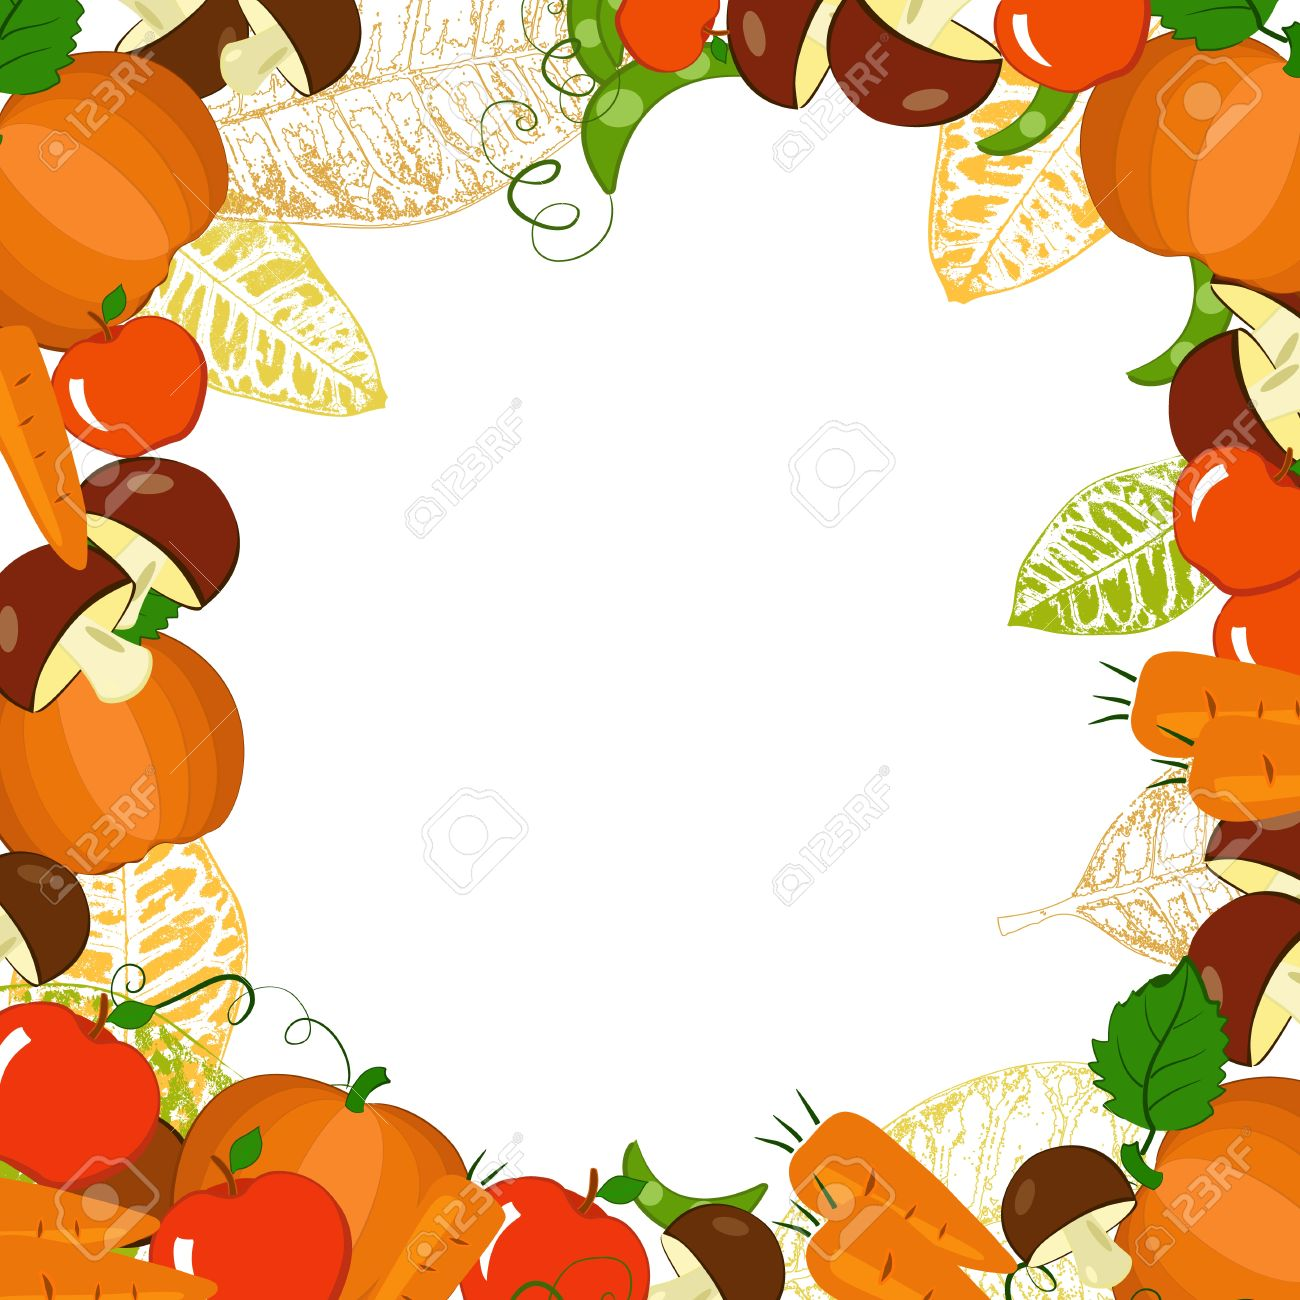 frame with autumn vegetables and leaves royalty free cliparts rh 123rf com Autumn Leaves Clip Art Pumpkin Border Clip Art